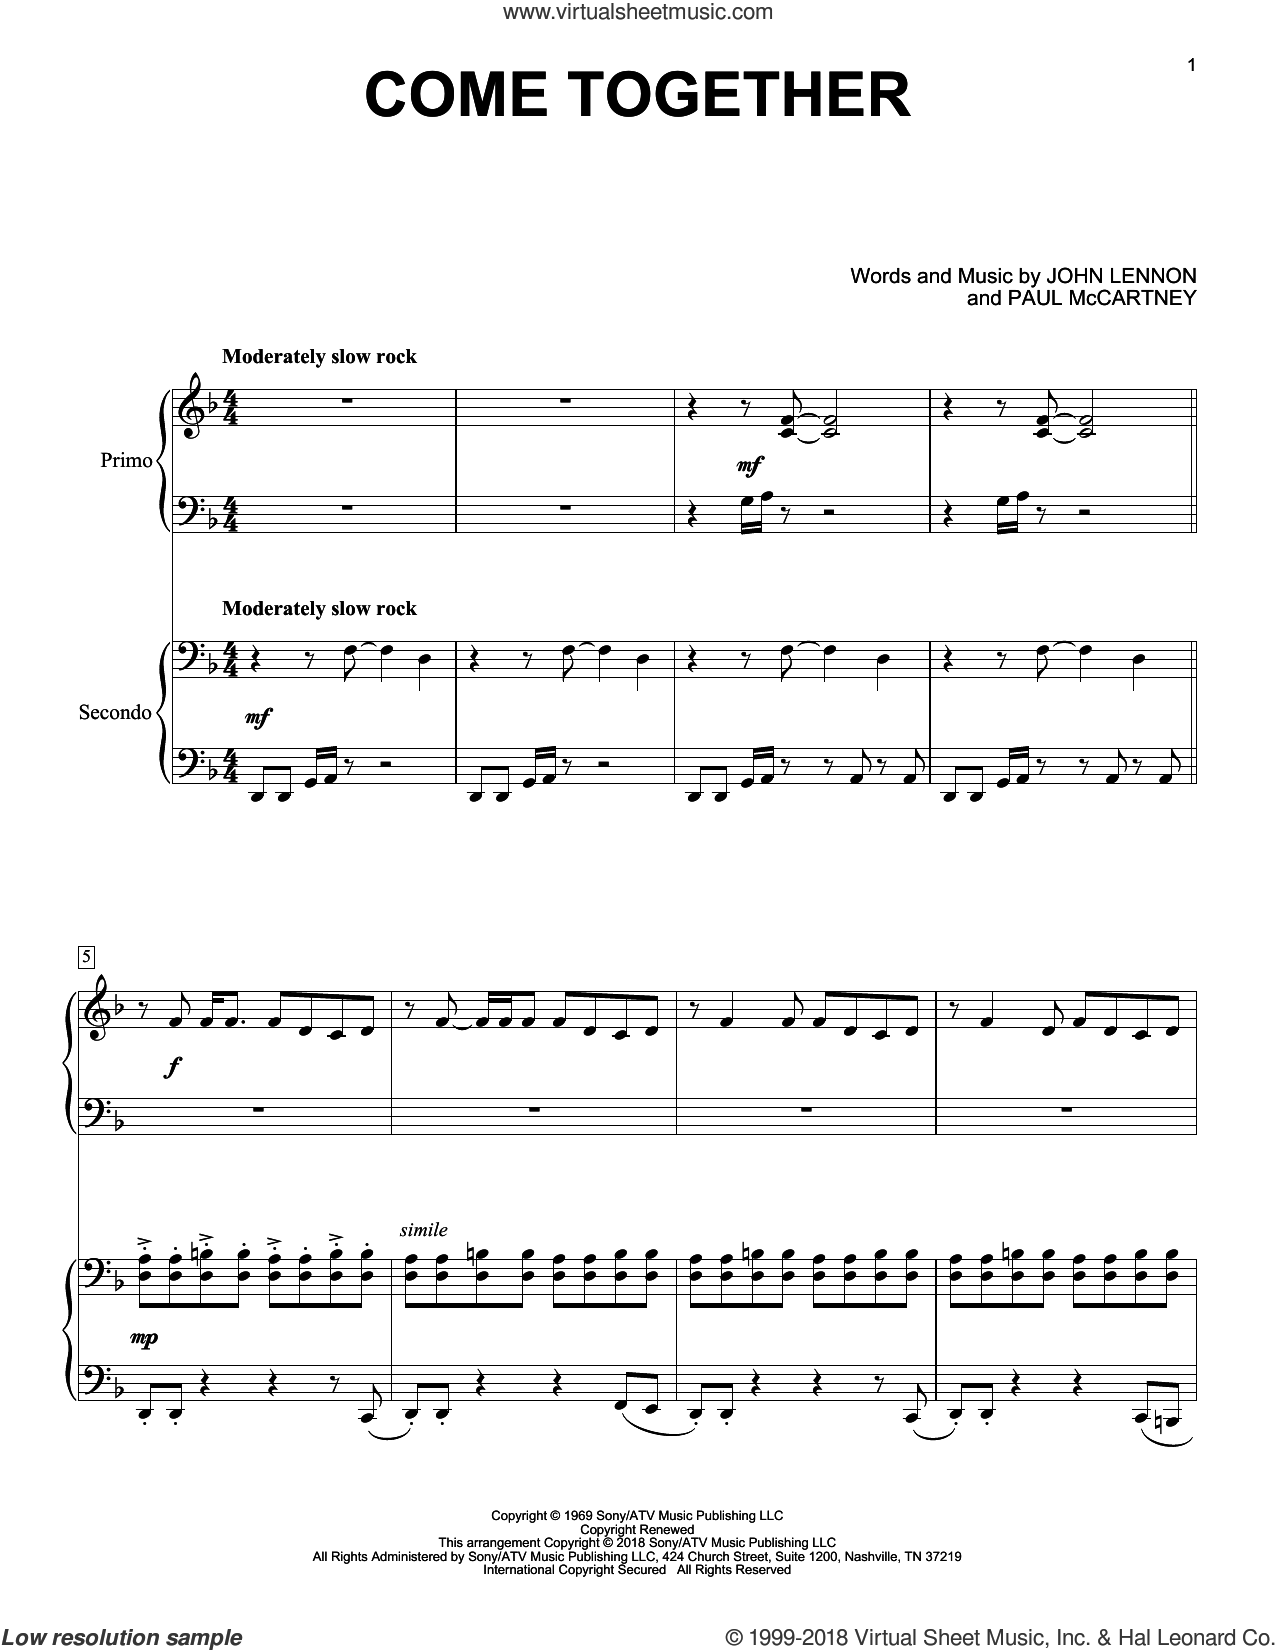 Come Together sheet music for piano four hands by The Beatles, Eric Baumgartner, John Lennon and Paul McCartney, intermediate skill level